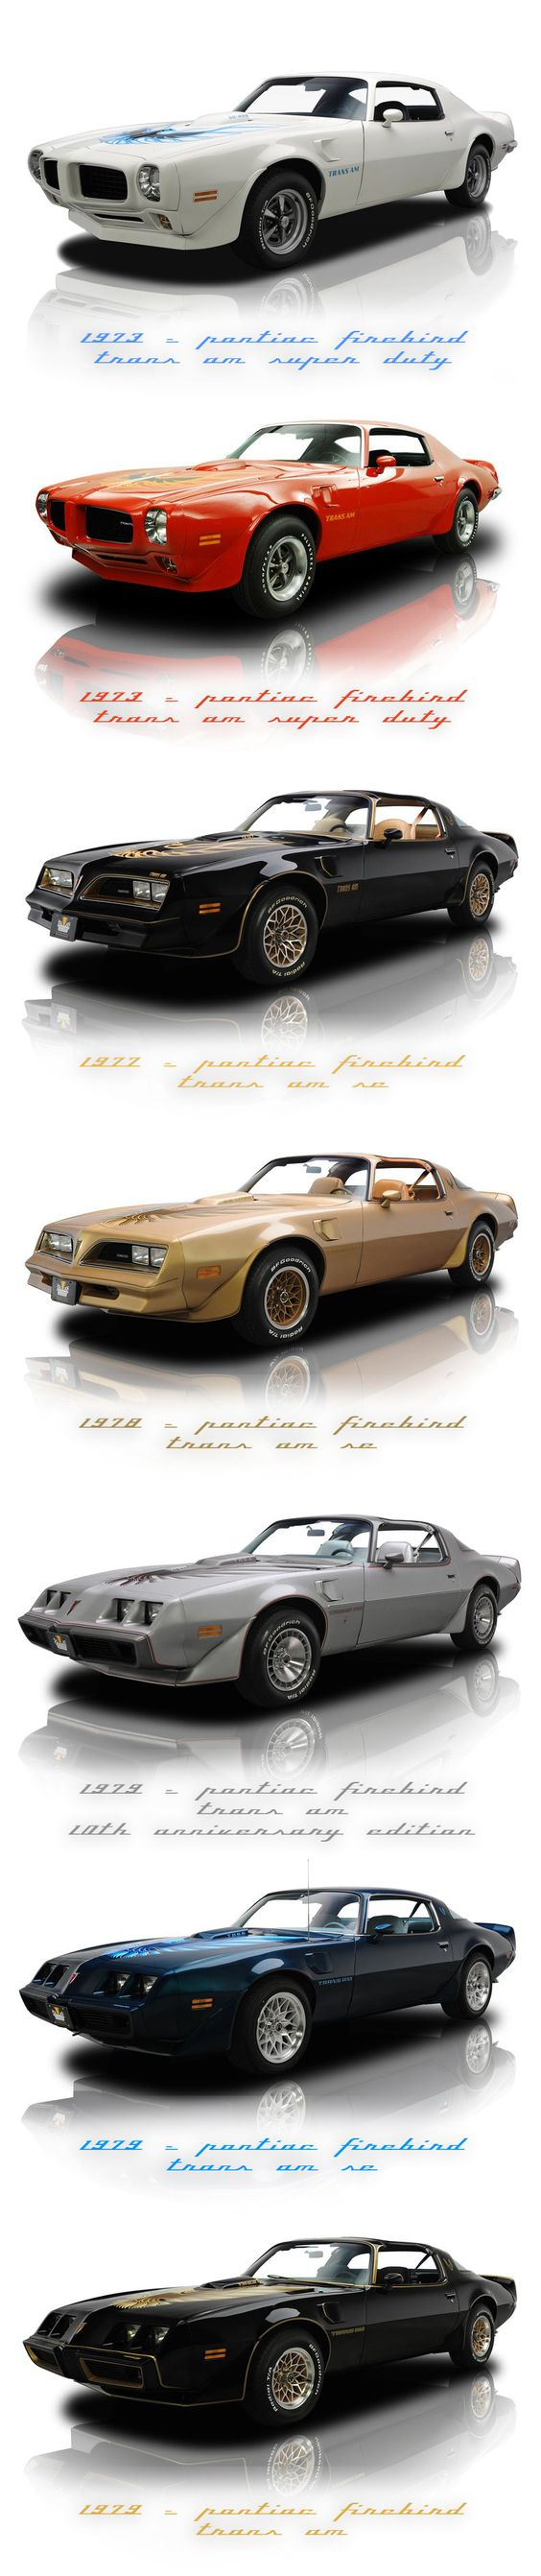 Pontiac Firebird Trans Am SealingsAndExpungements.com 888-9-EXPUNGE (888-939-7864) 24/7 Free evaluations/Low money down/Easy payments. Sealing past mistakes. Opening new opportunities.                                                                                                                                                     More